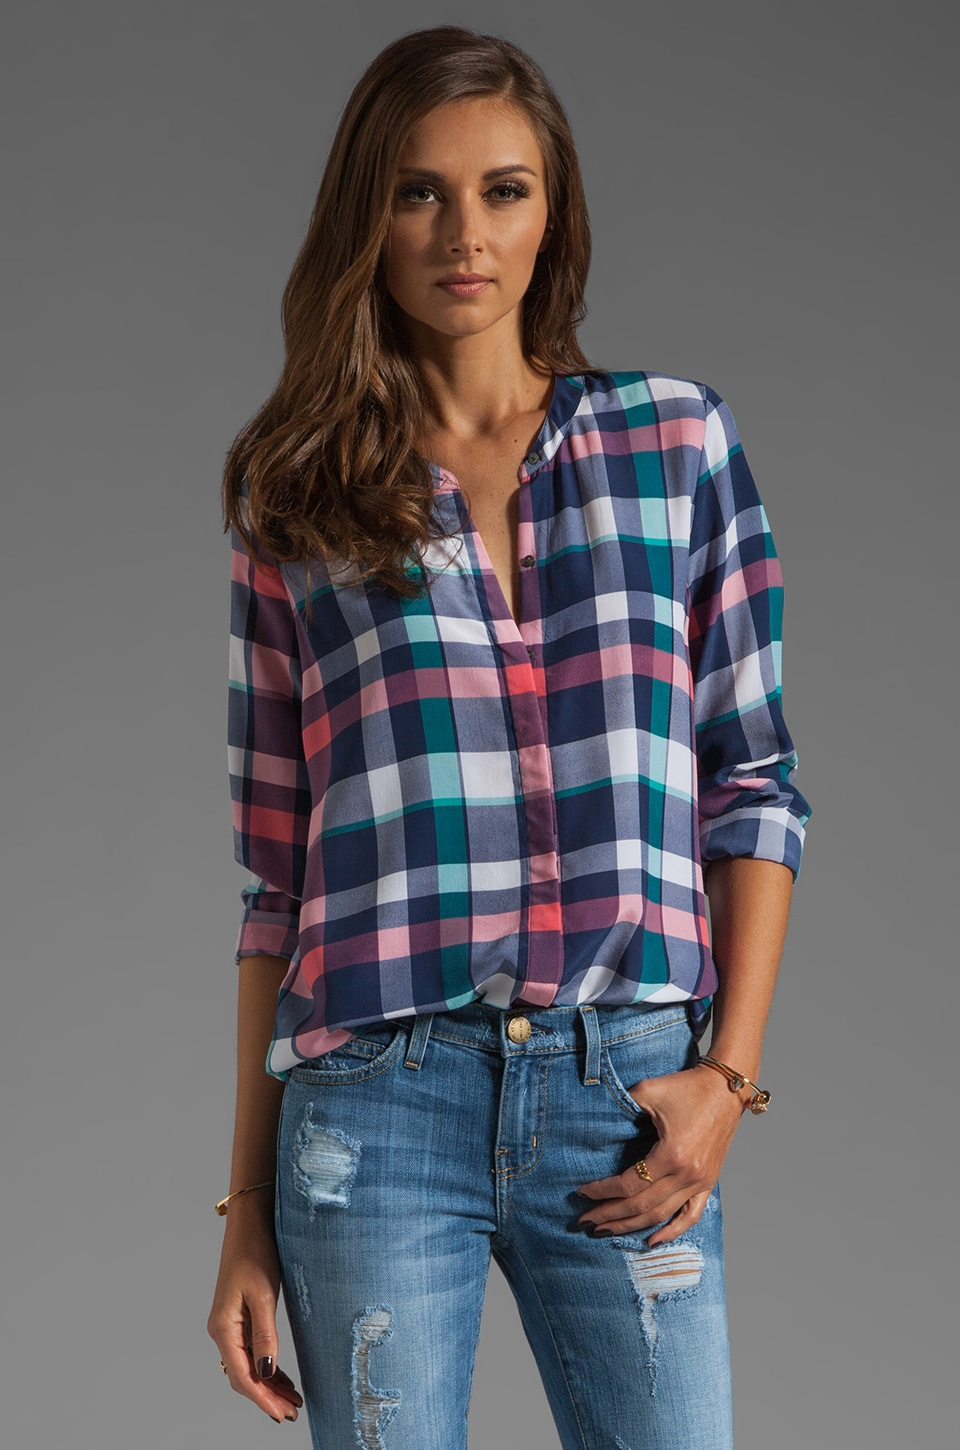 Joie Ceres Plaid Blouse in Twilight